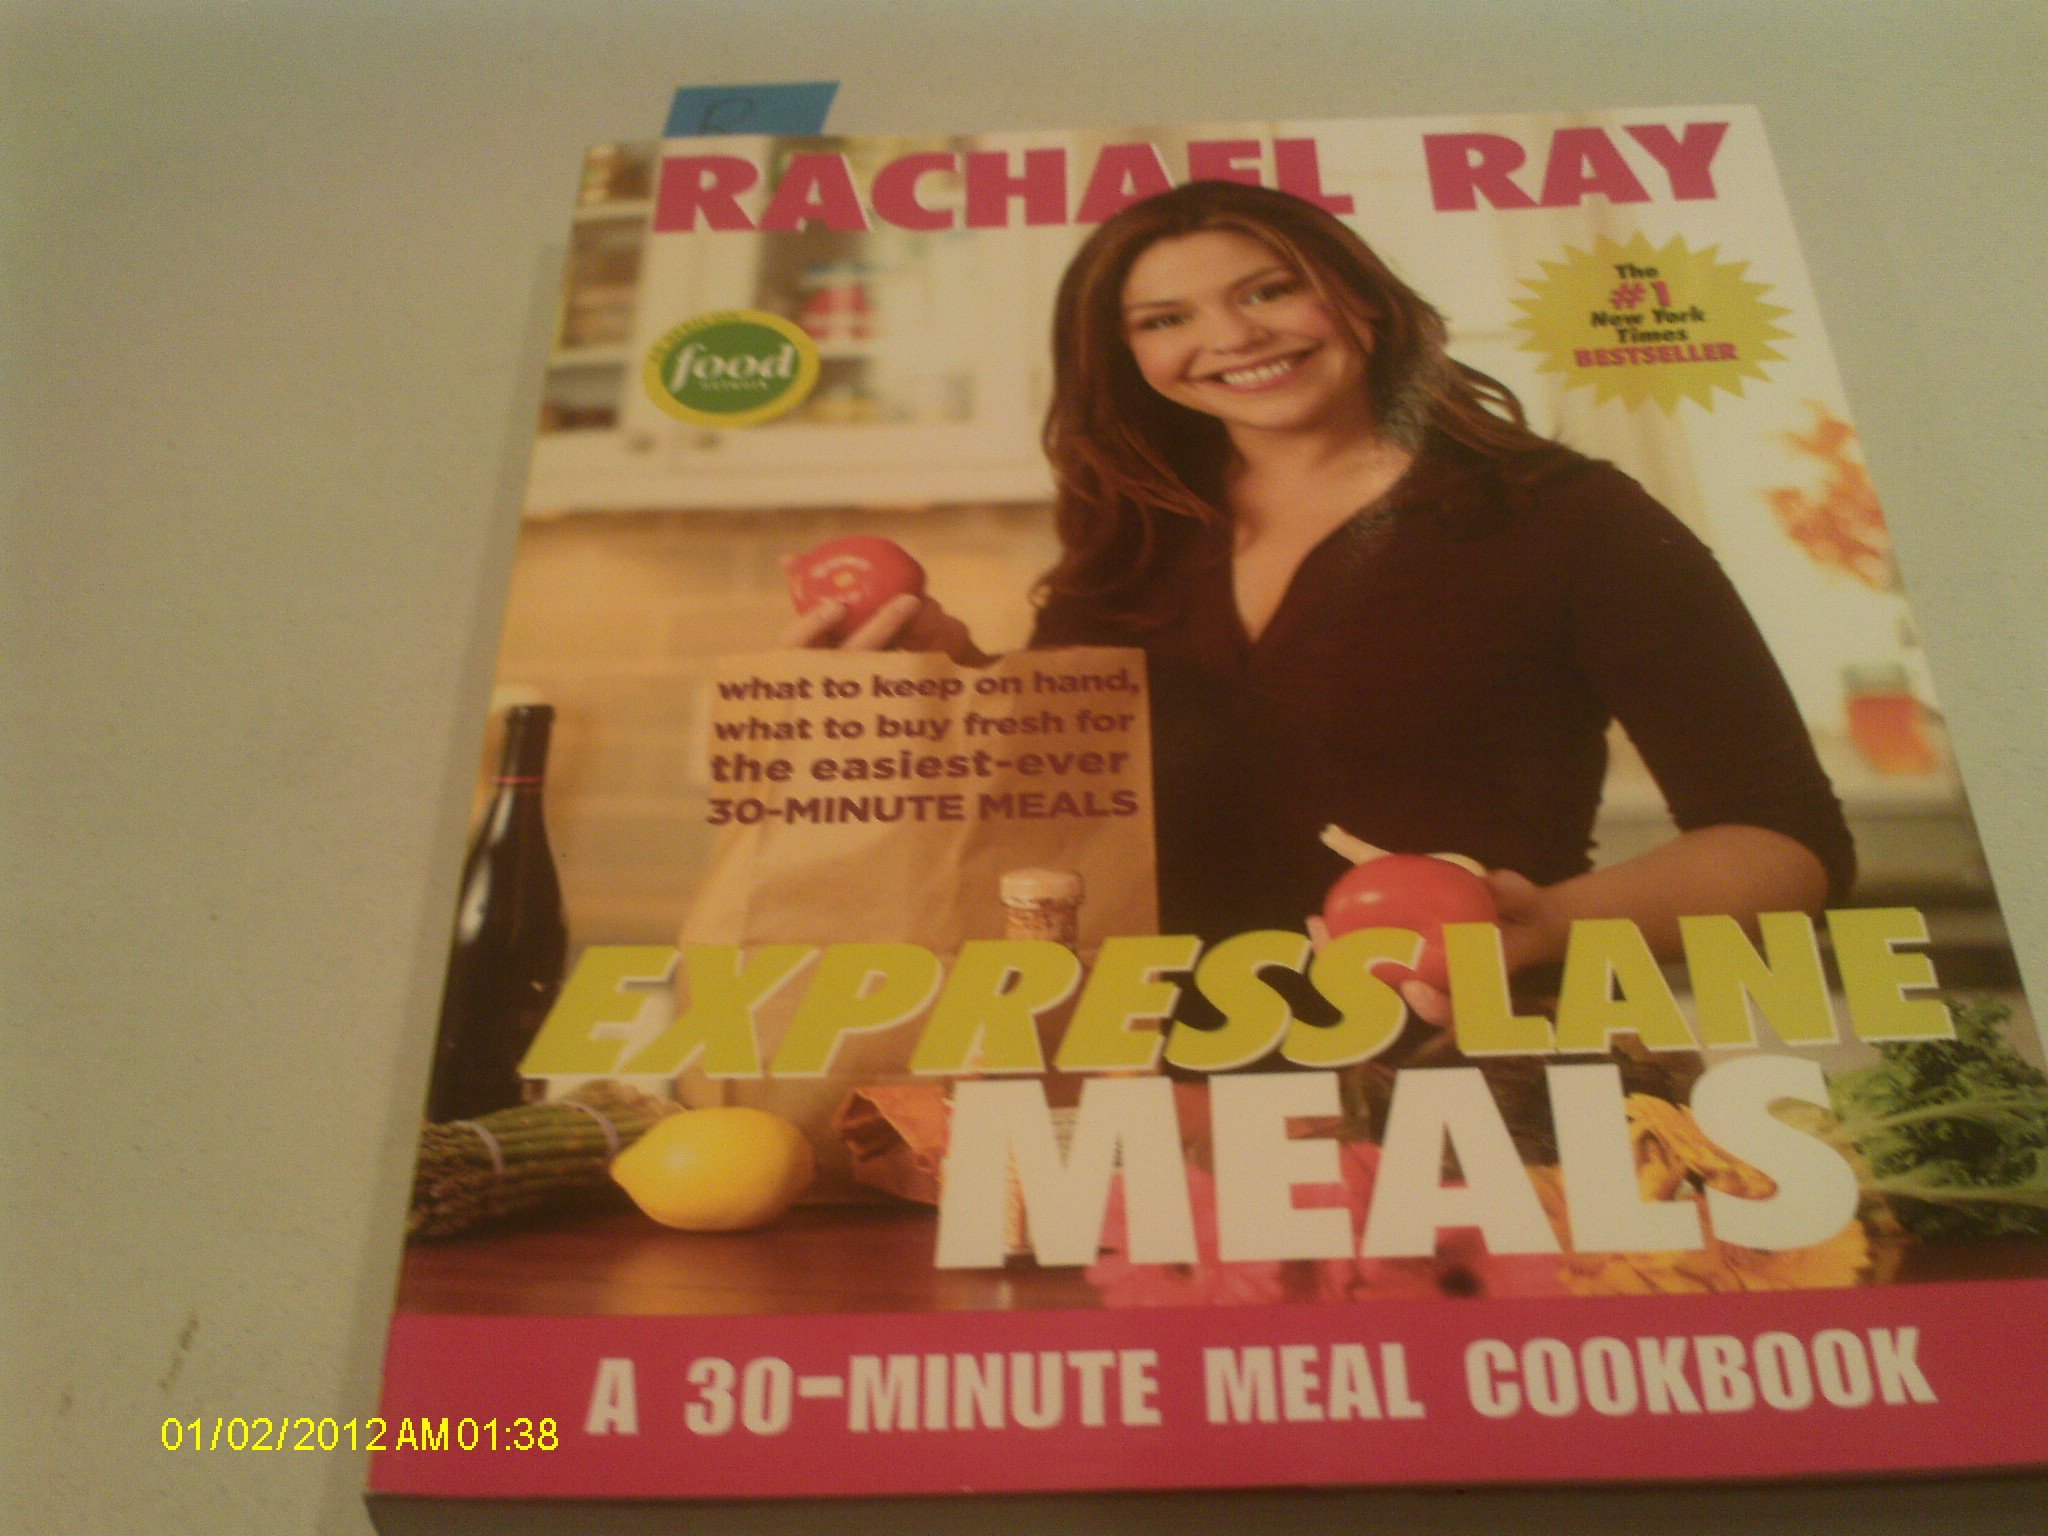 Express Lane Meals - A 30 Minute Meal Cookbook Paperback – 2006. by Rachel Ray ...